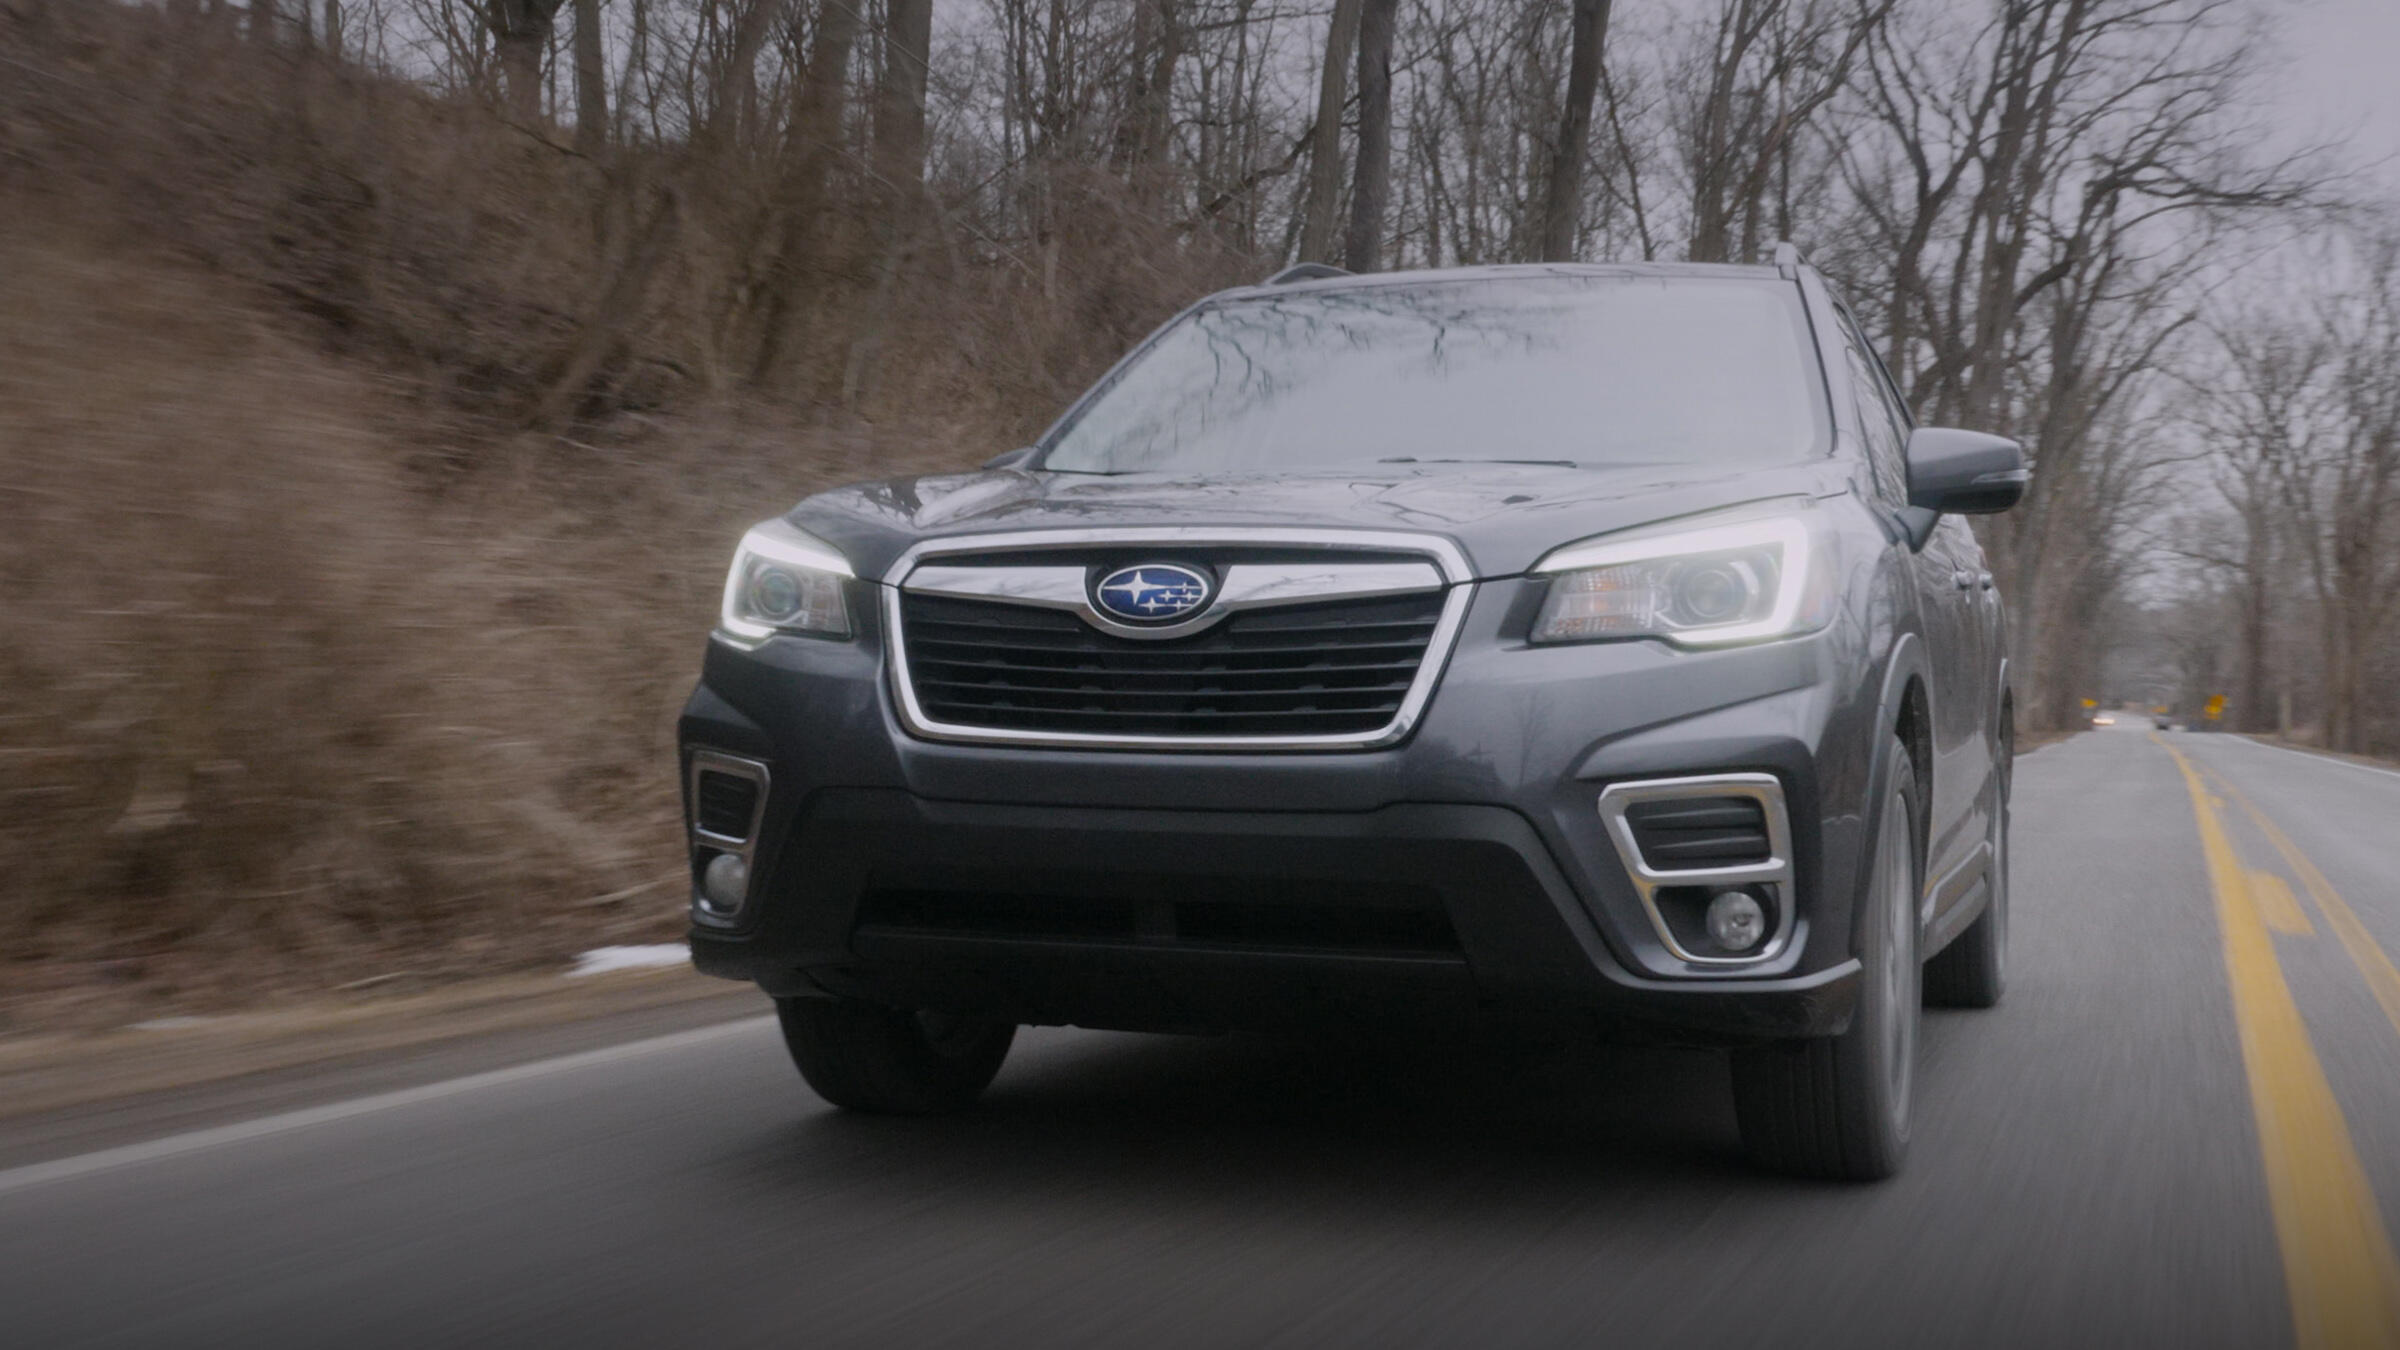 Video: The 2020 Subaru Forester is a wholesome choice